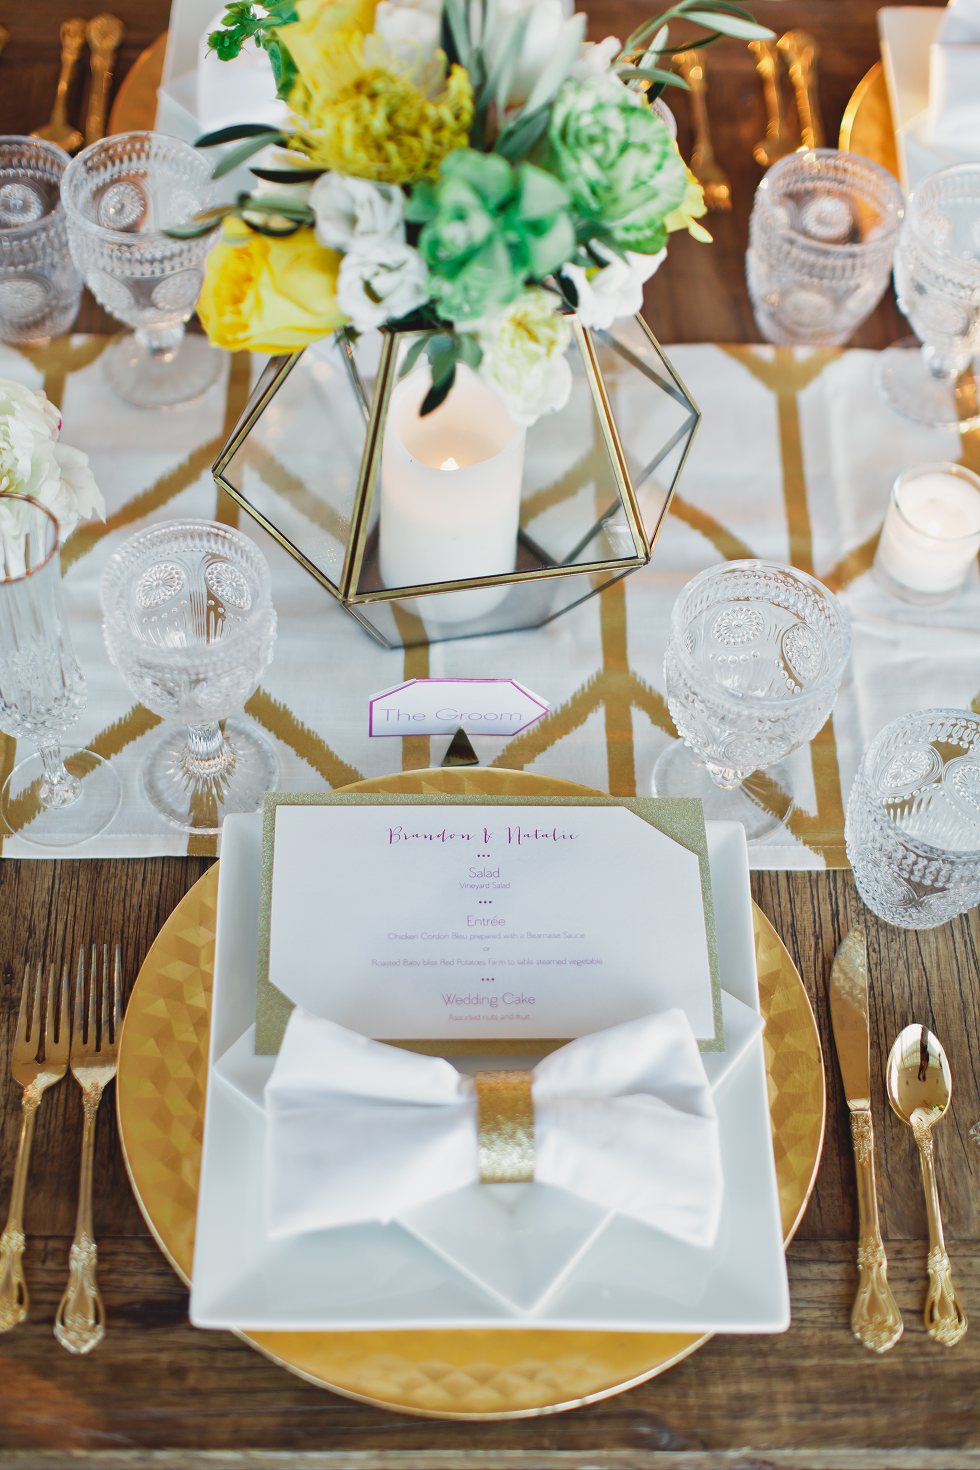 Geometric designed wedding details